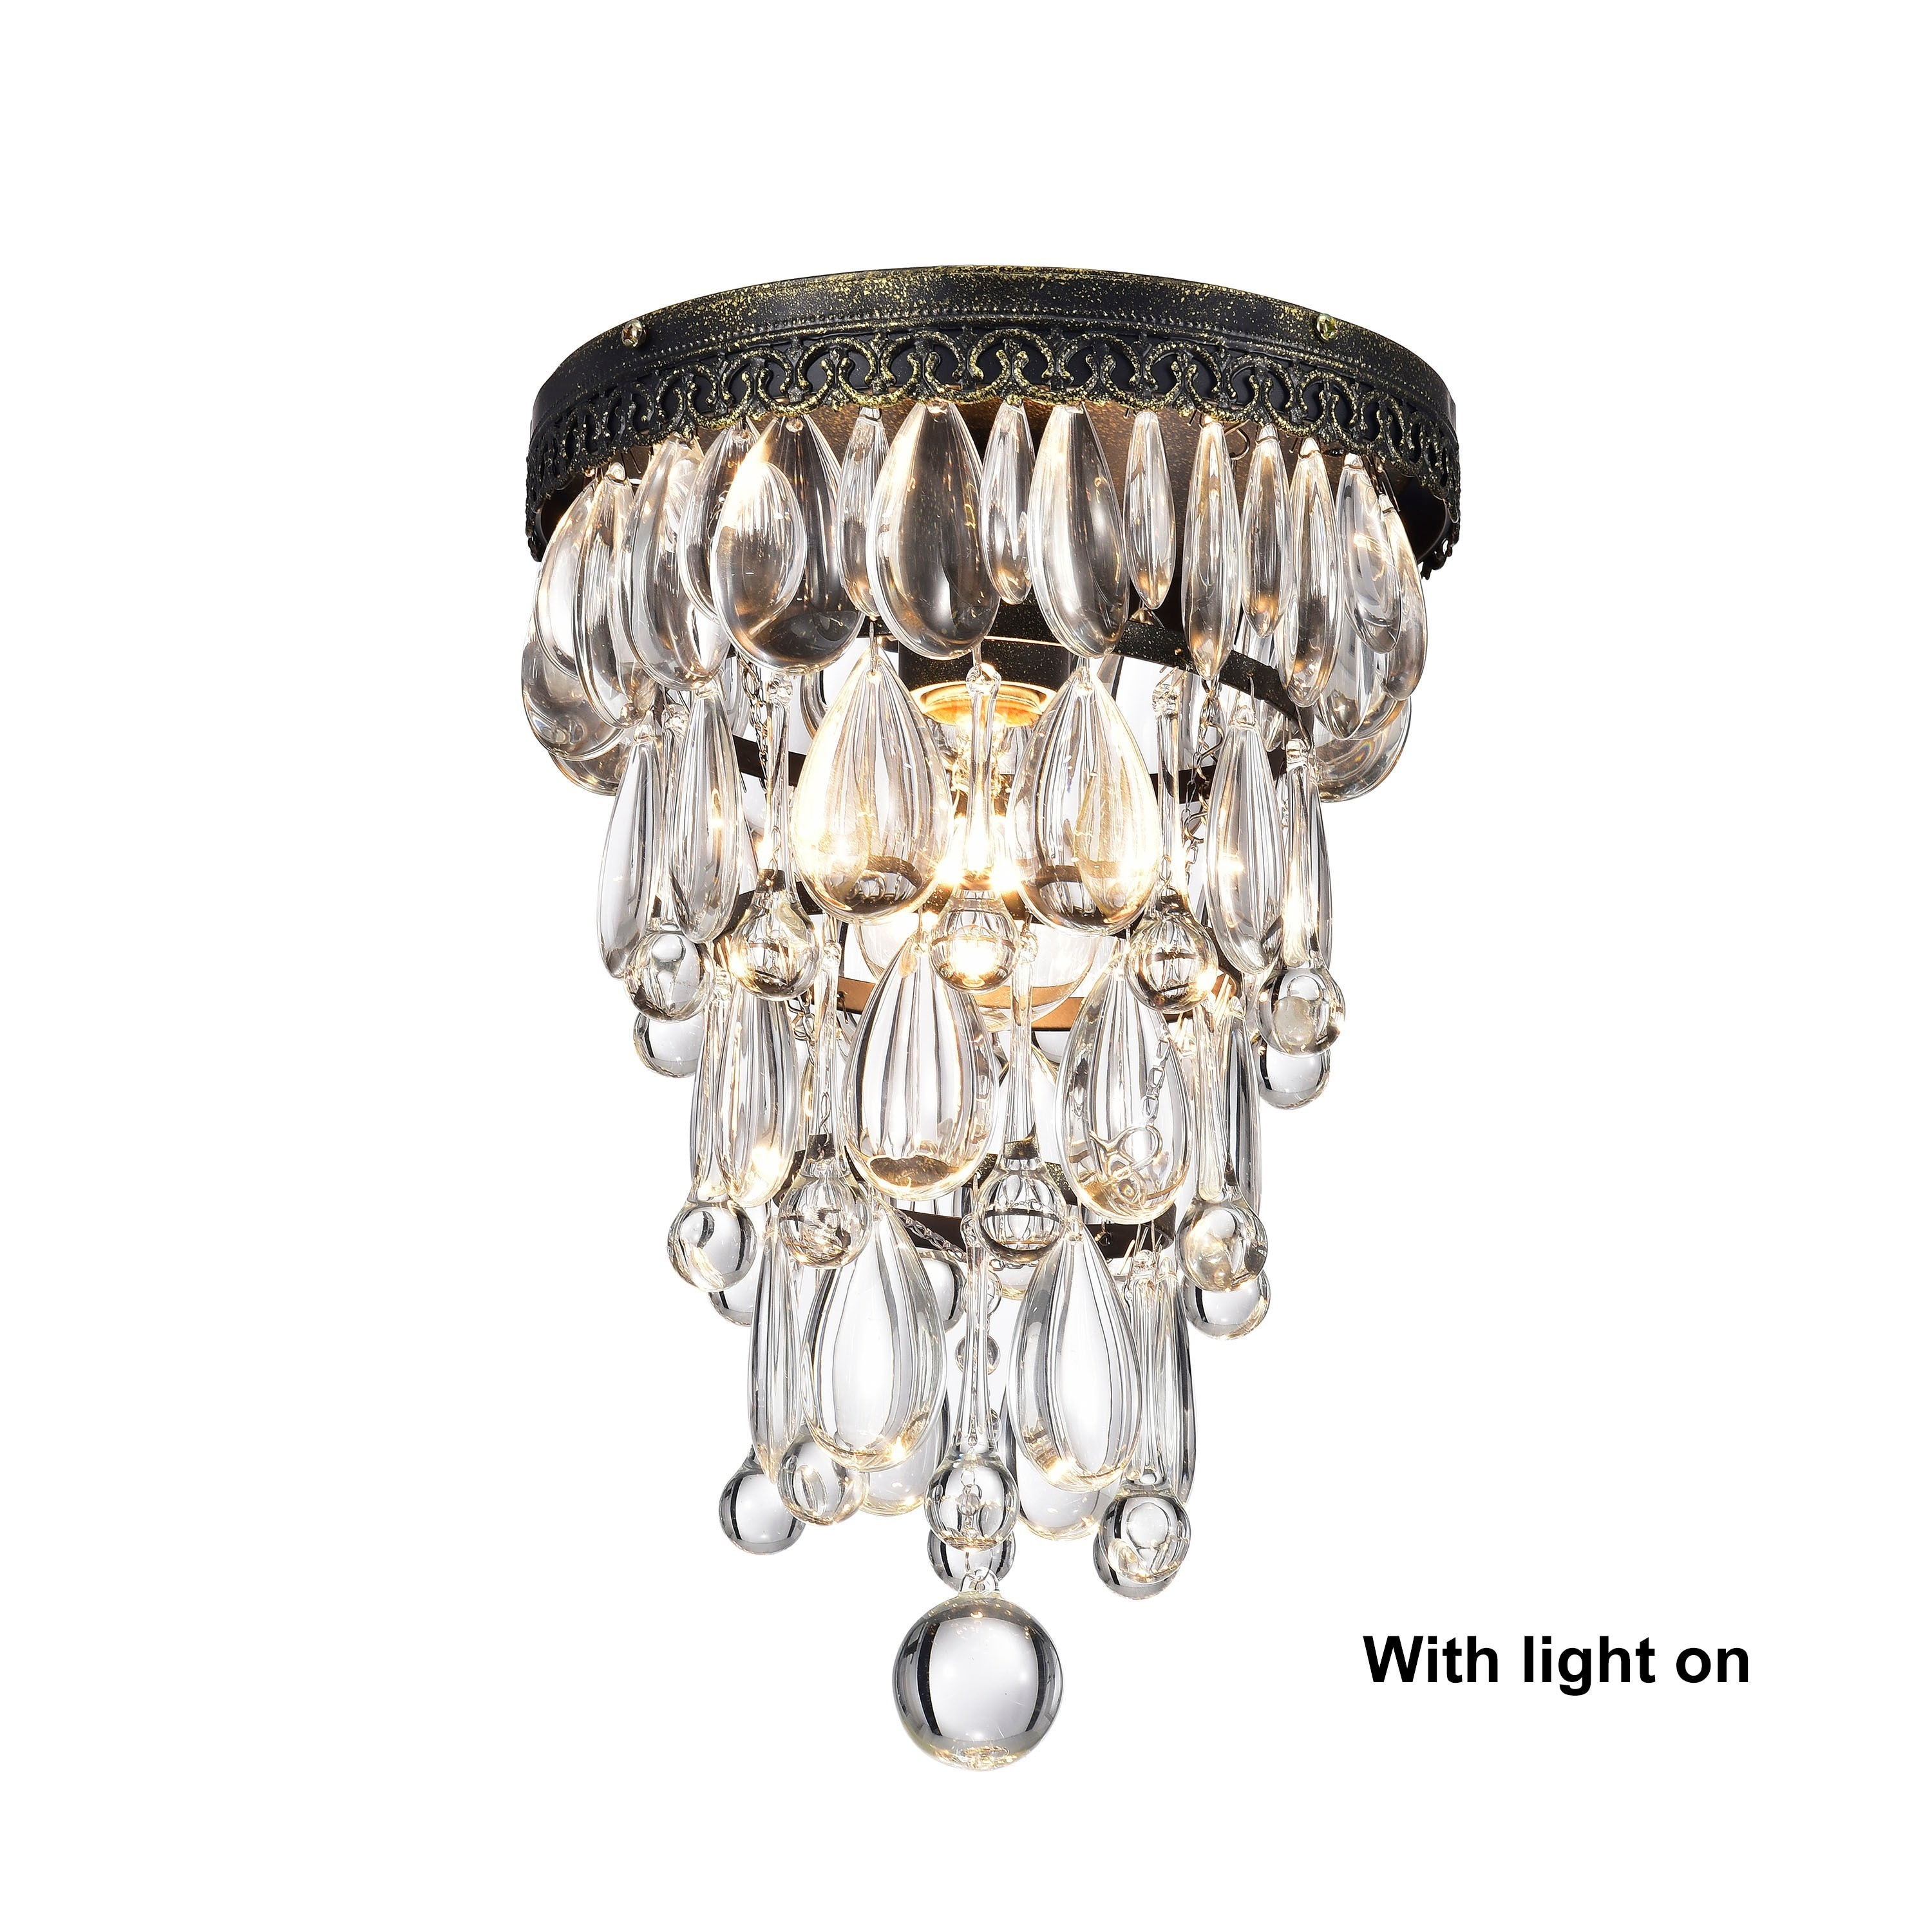 mid lighting discs handblown id century flush chandeliers modern with ceiling murano x lights glass mount sale for f furniture chandelier